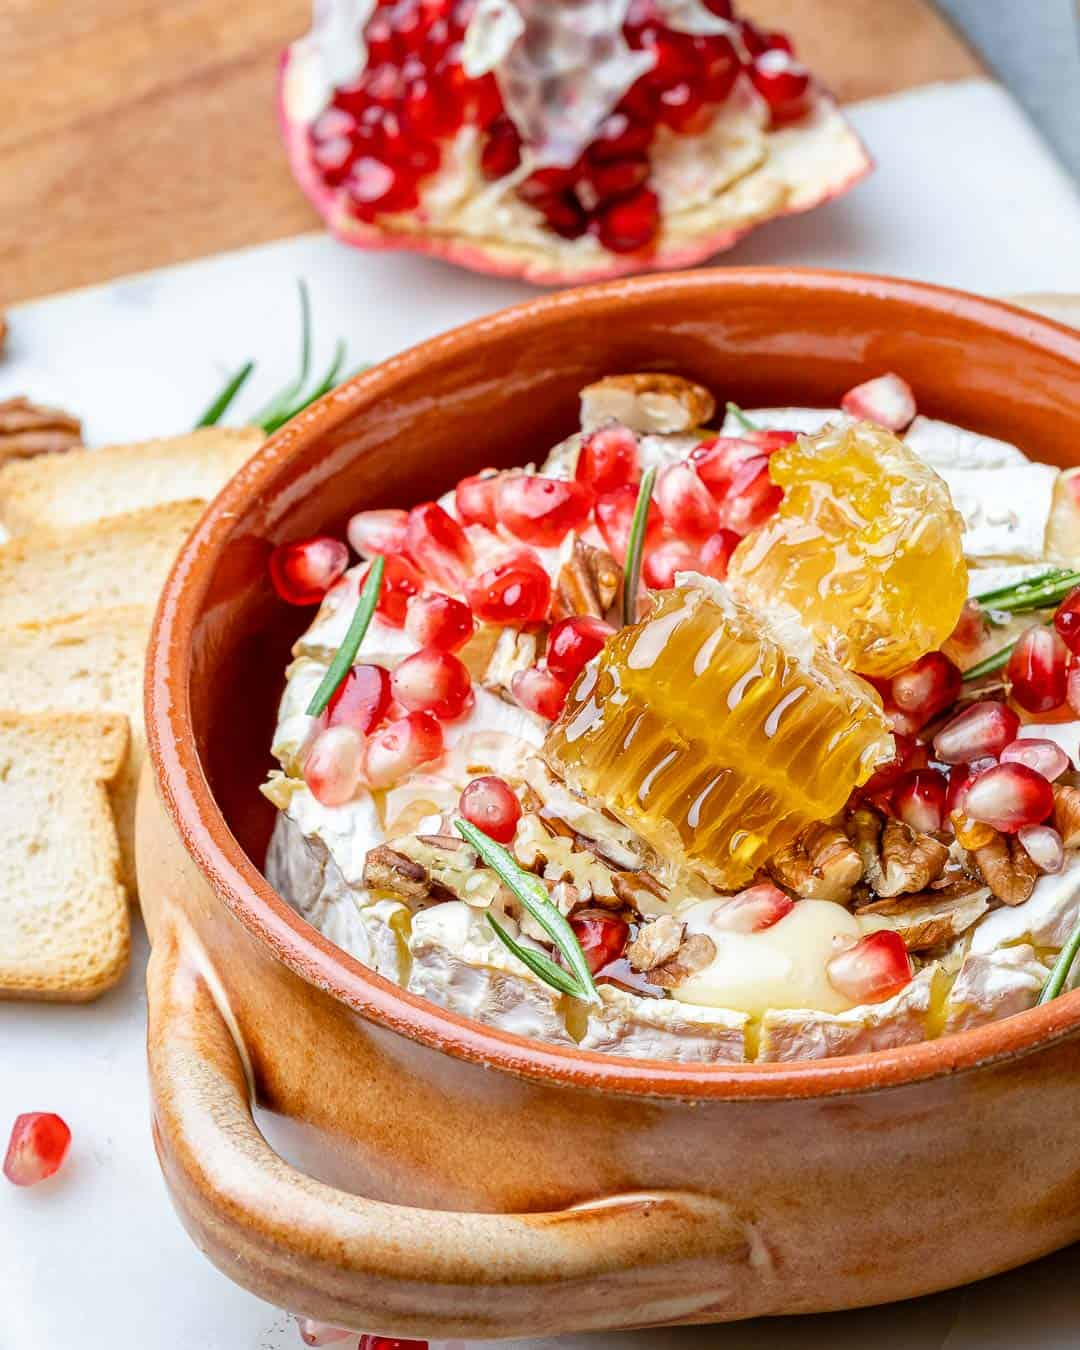 Baked brie with pomegranates in baking dish with crackers on side